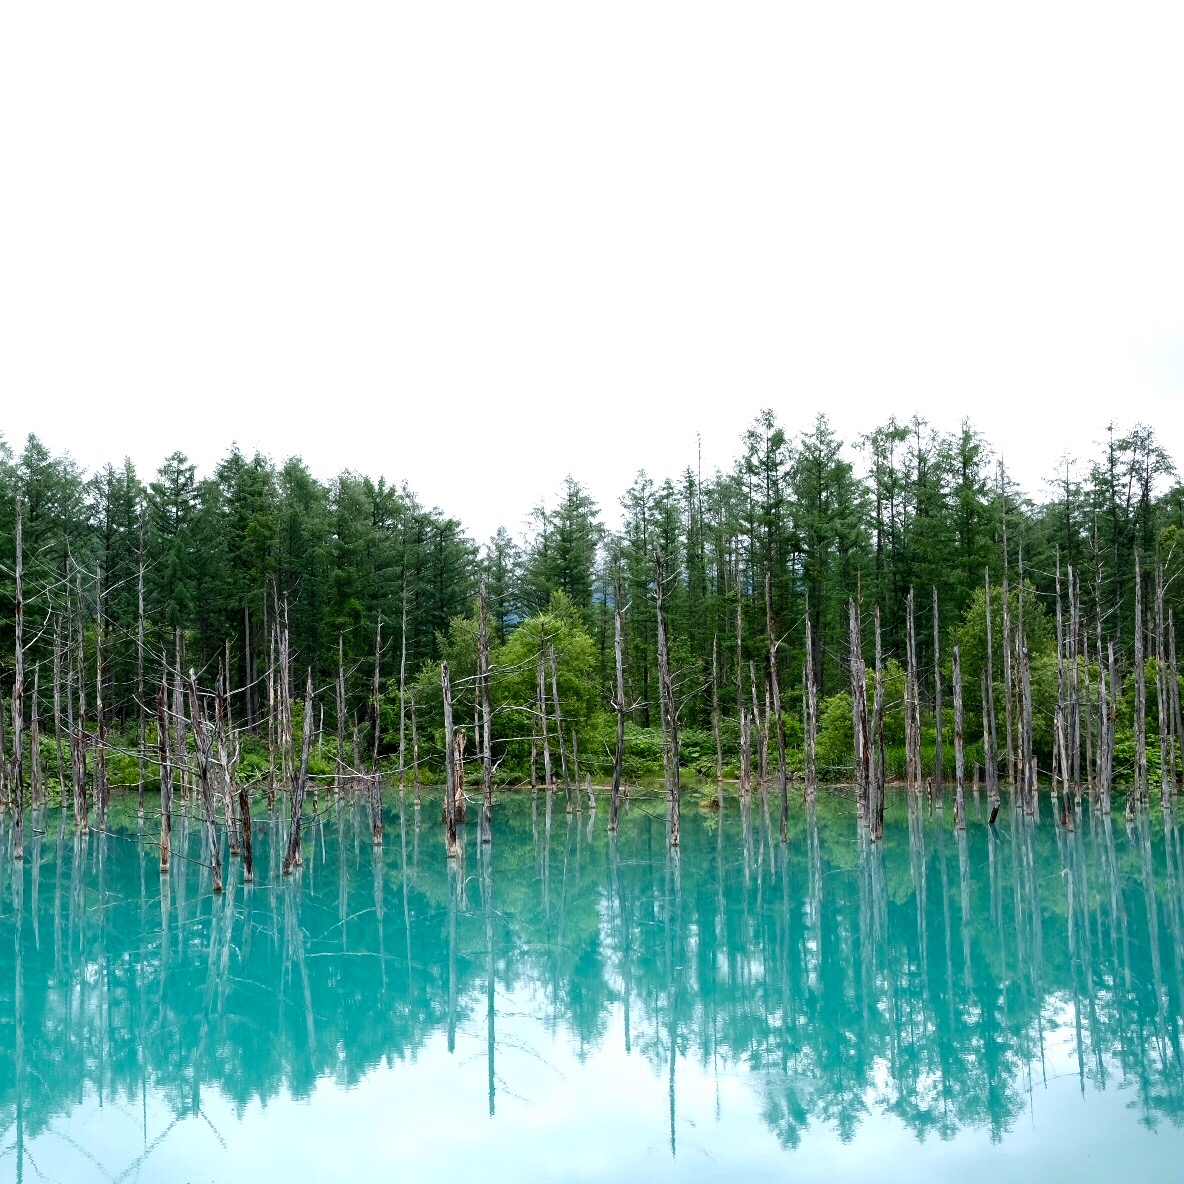 Shirogane Blue Pond